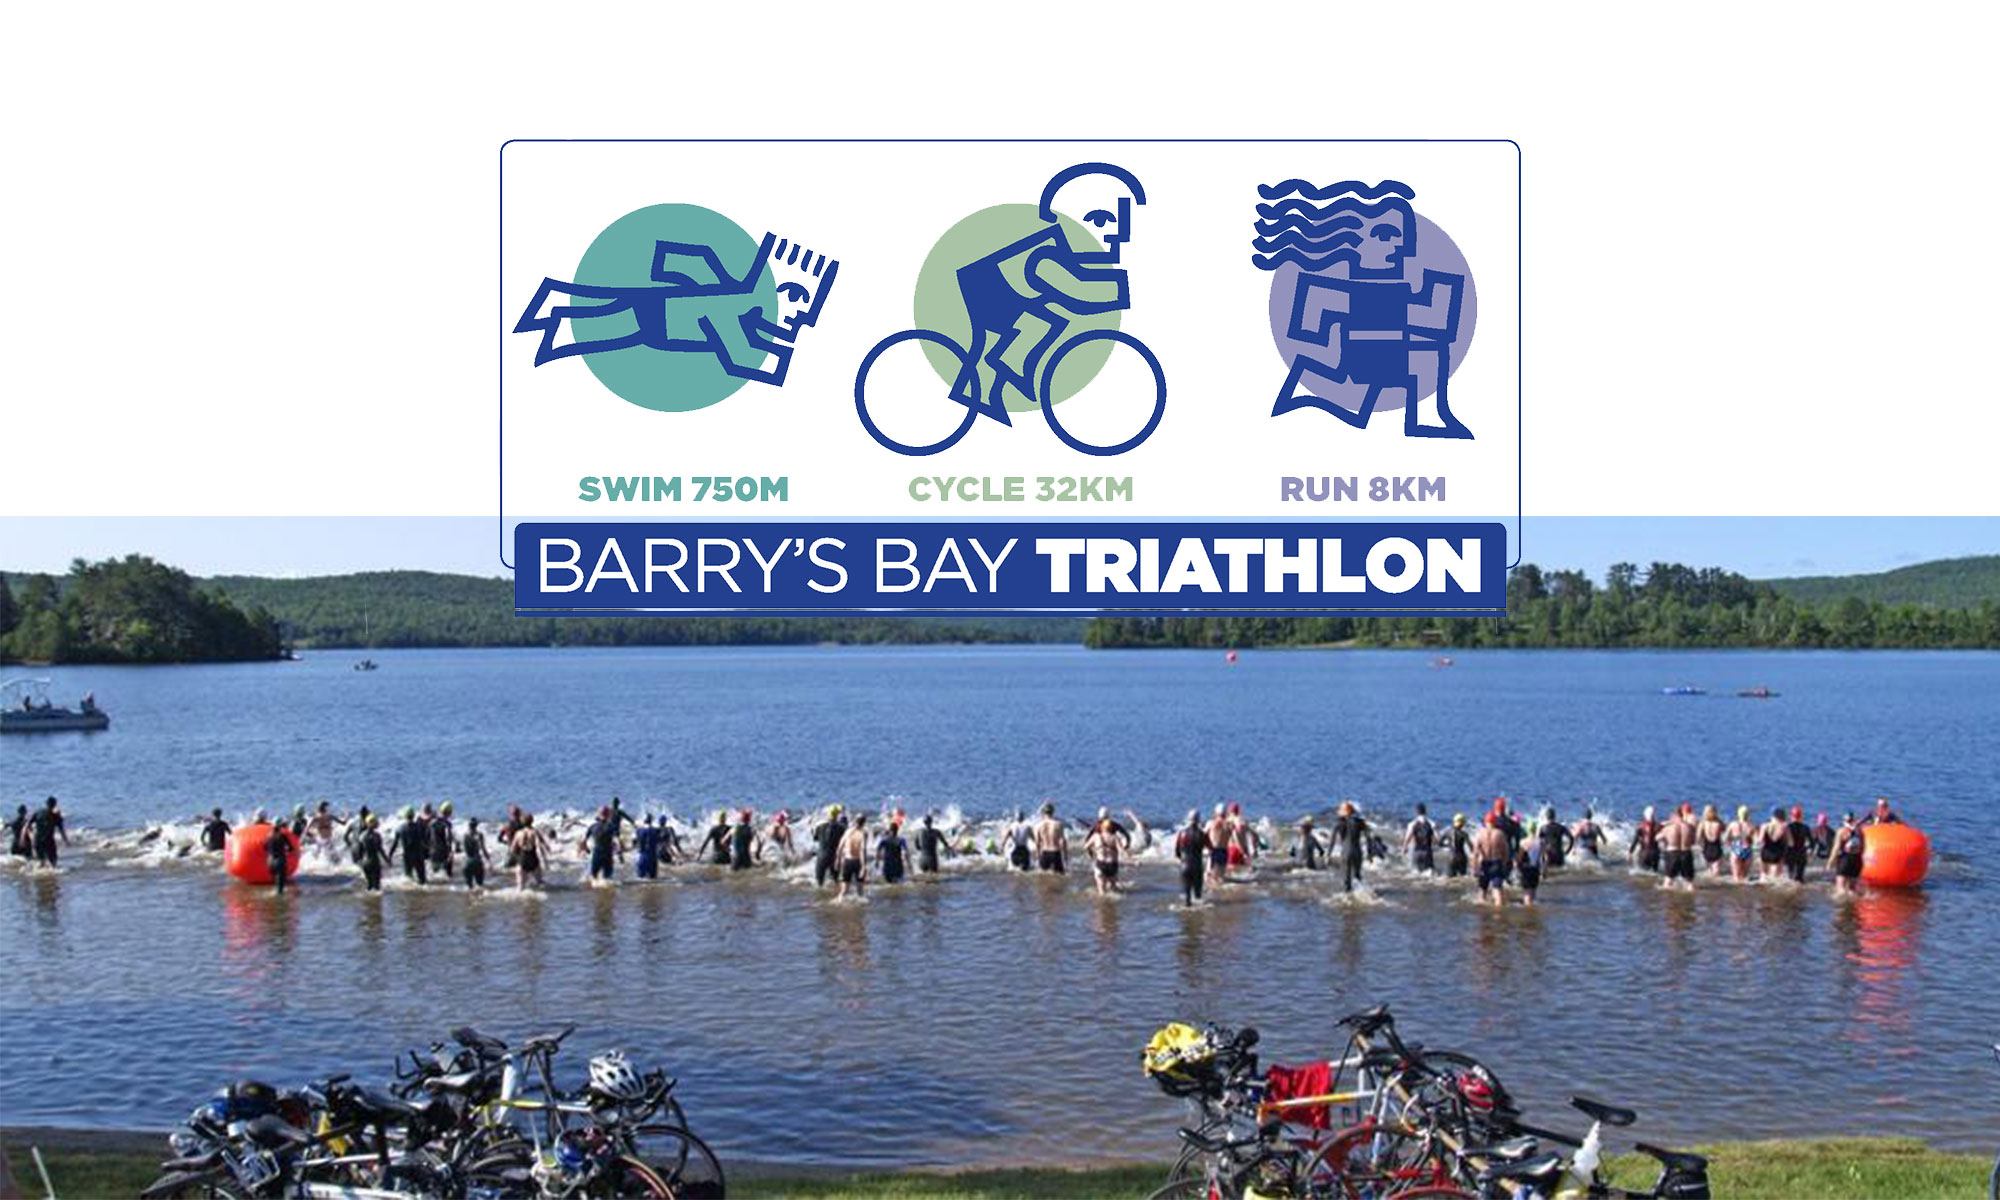 Barry's Bay Triathlon